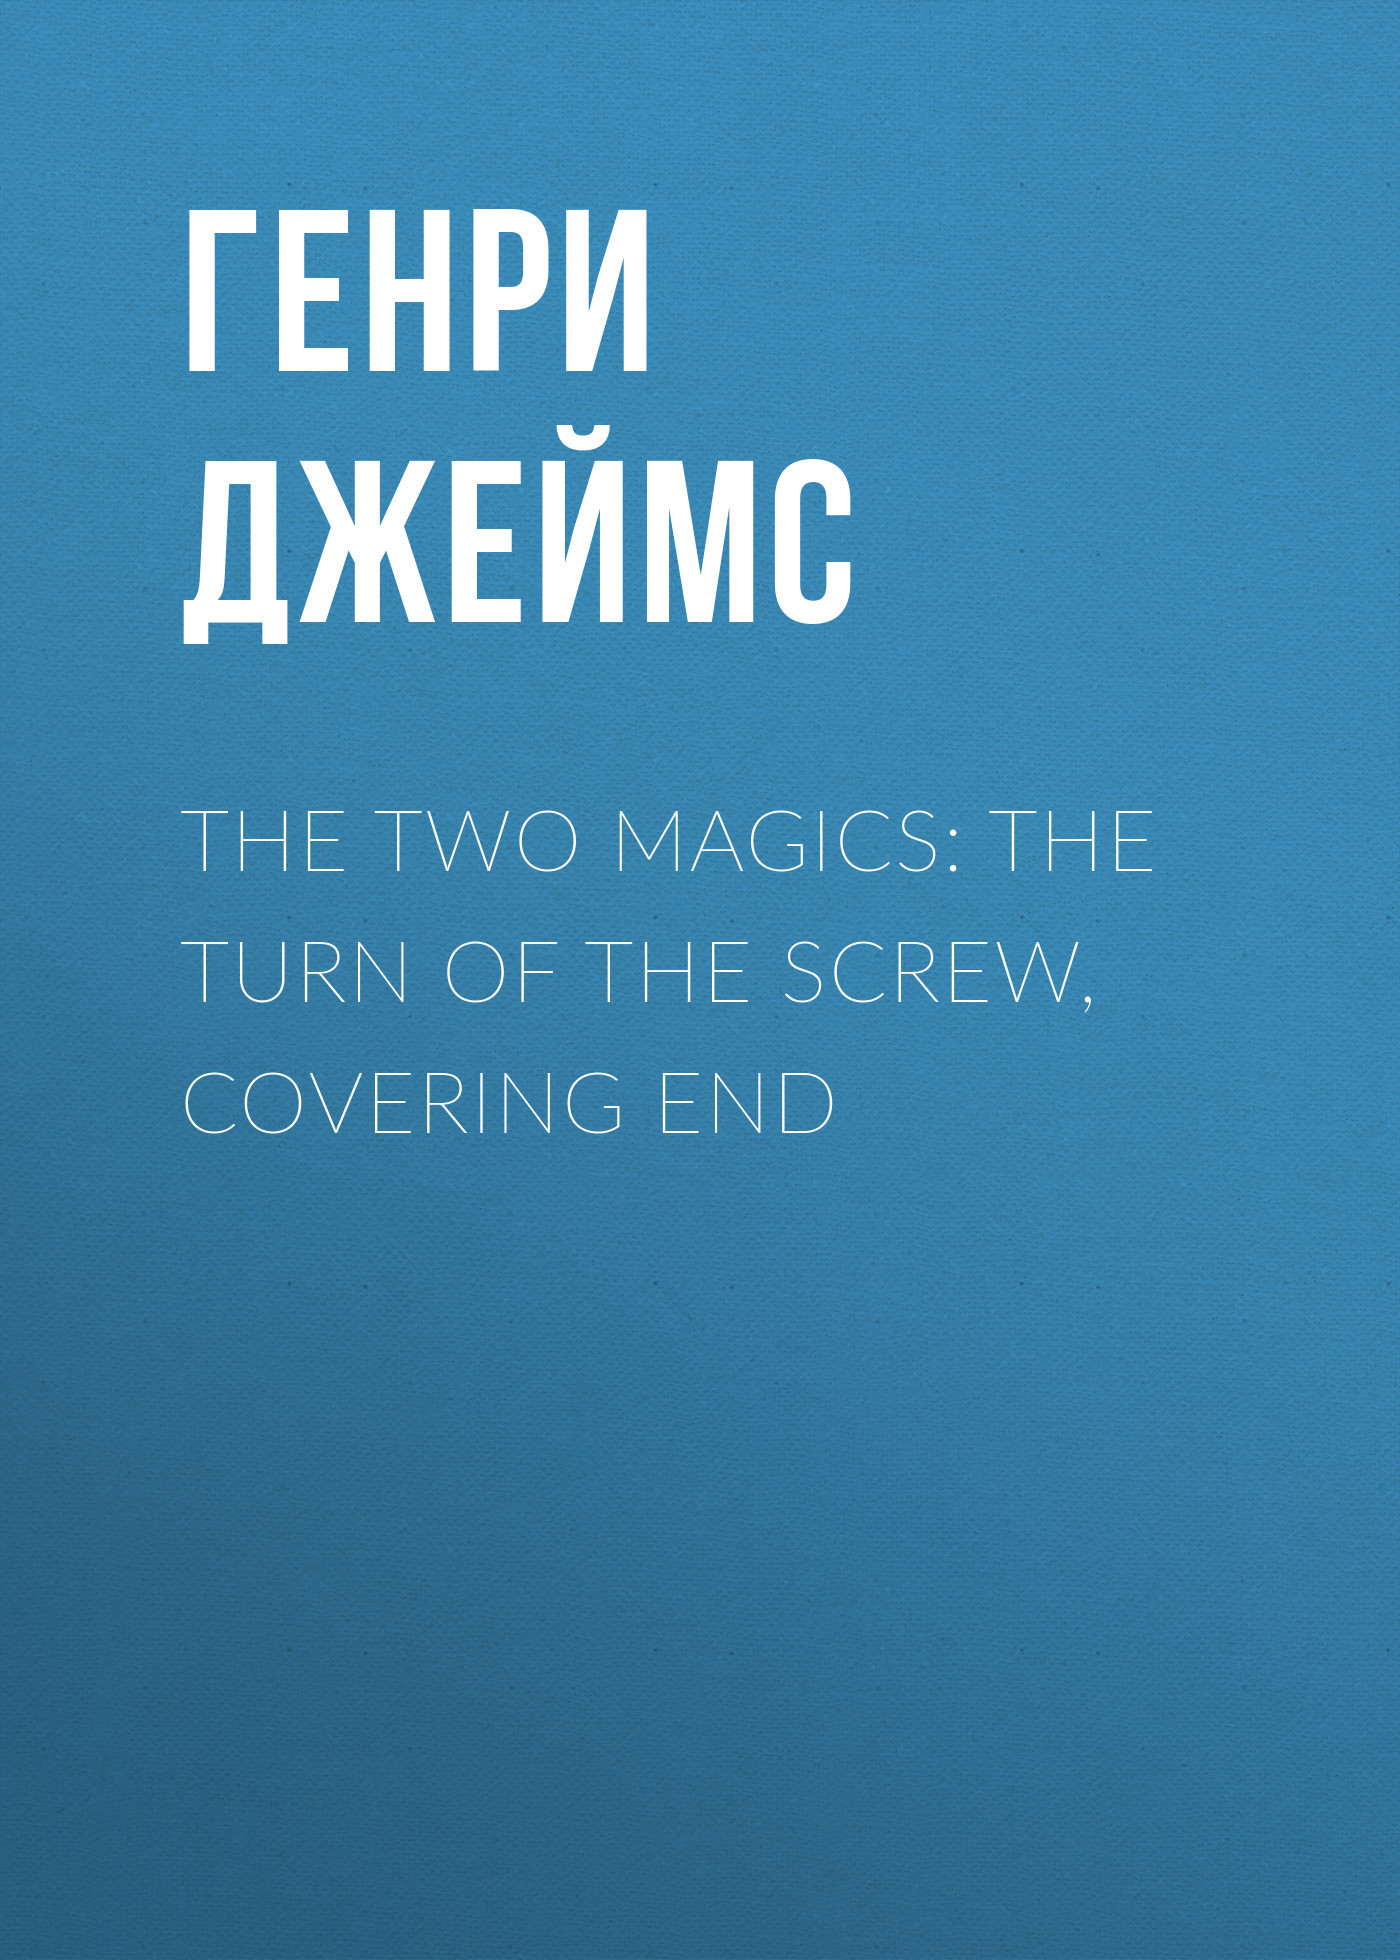 Генри Джеймс The Two Magics: The Turn of the Screw, Covering End sitemap html page 10 page 9 page 10